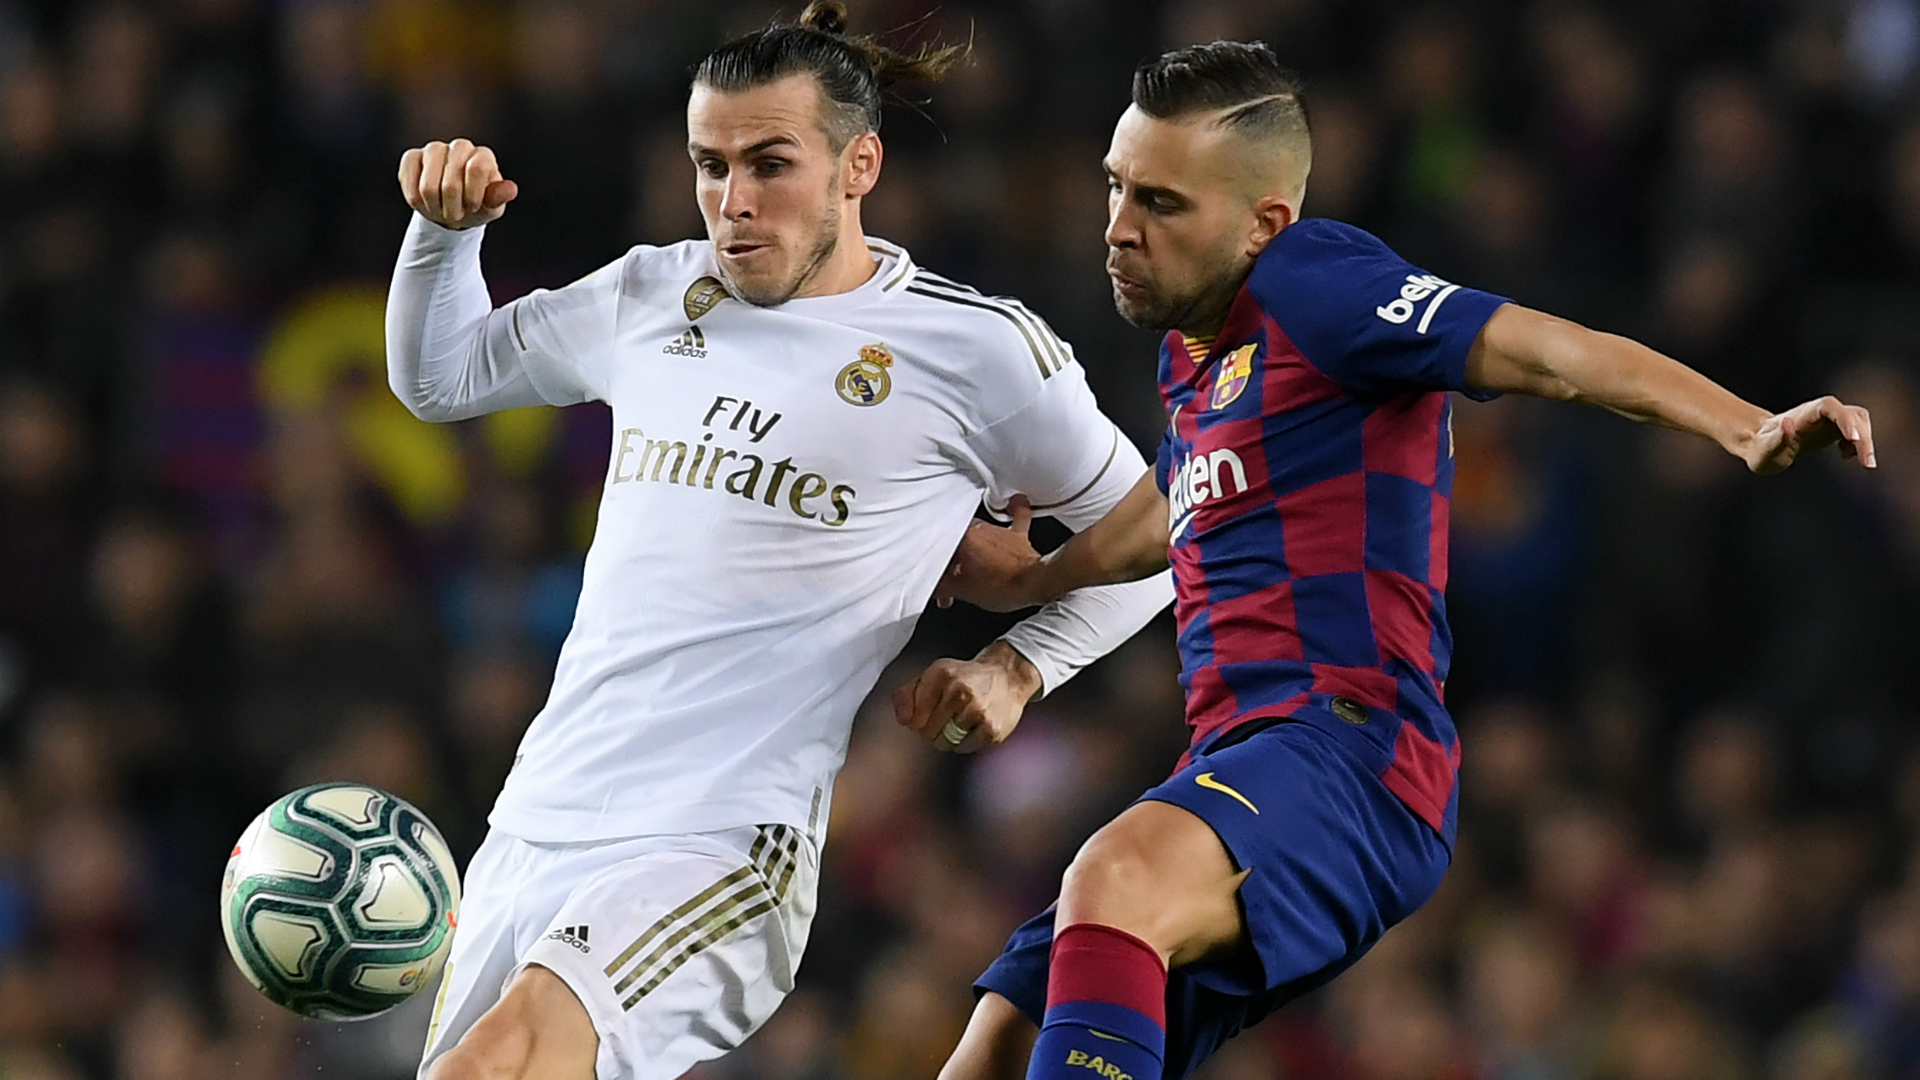 Report: El'Clasico Ends In Stalemate